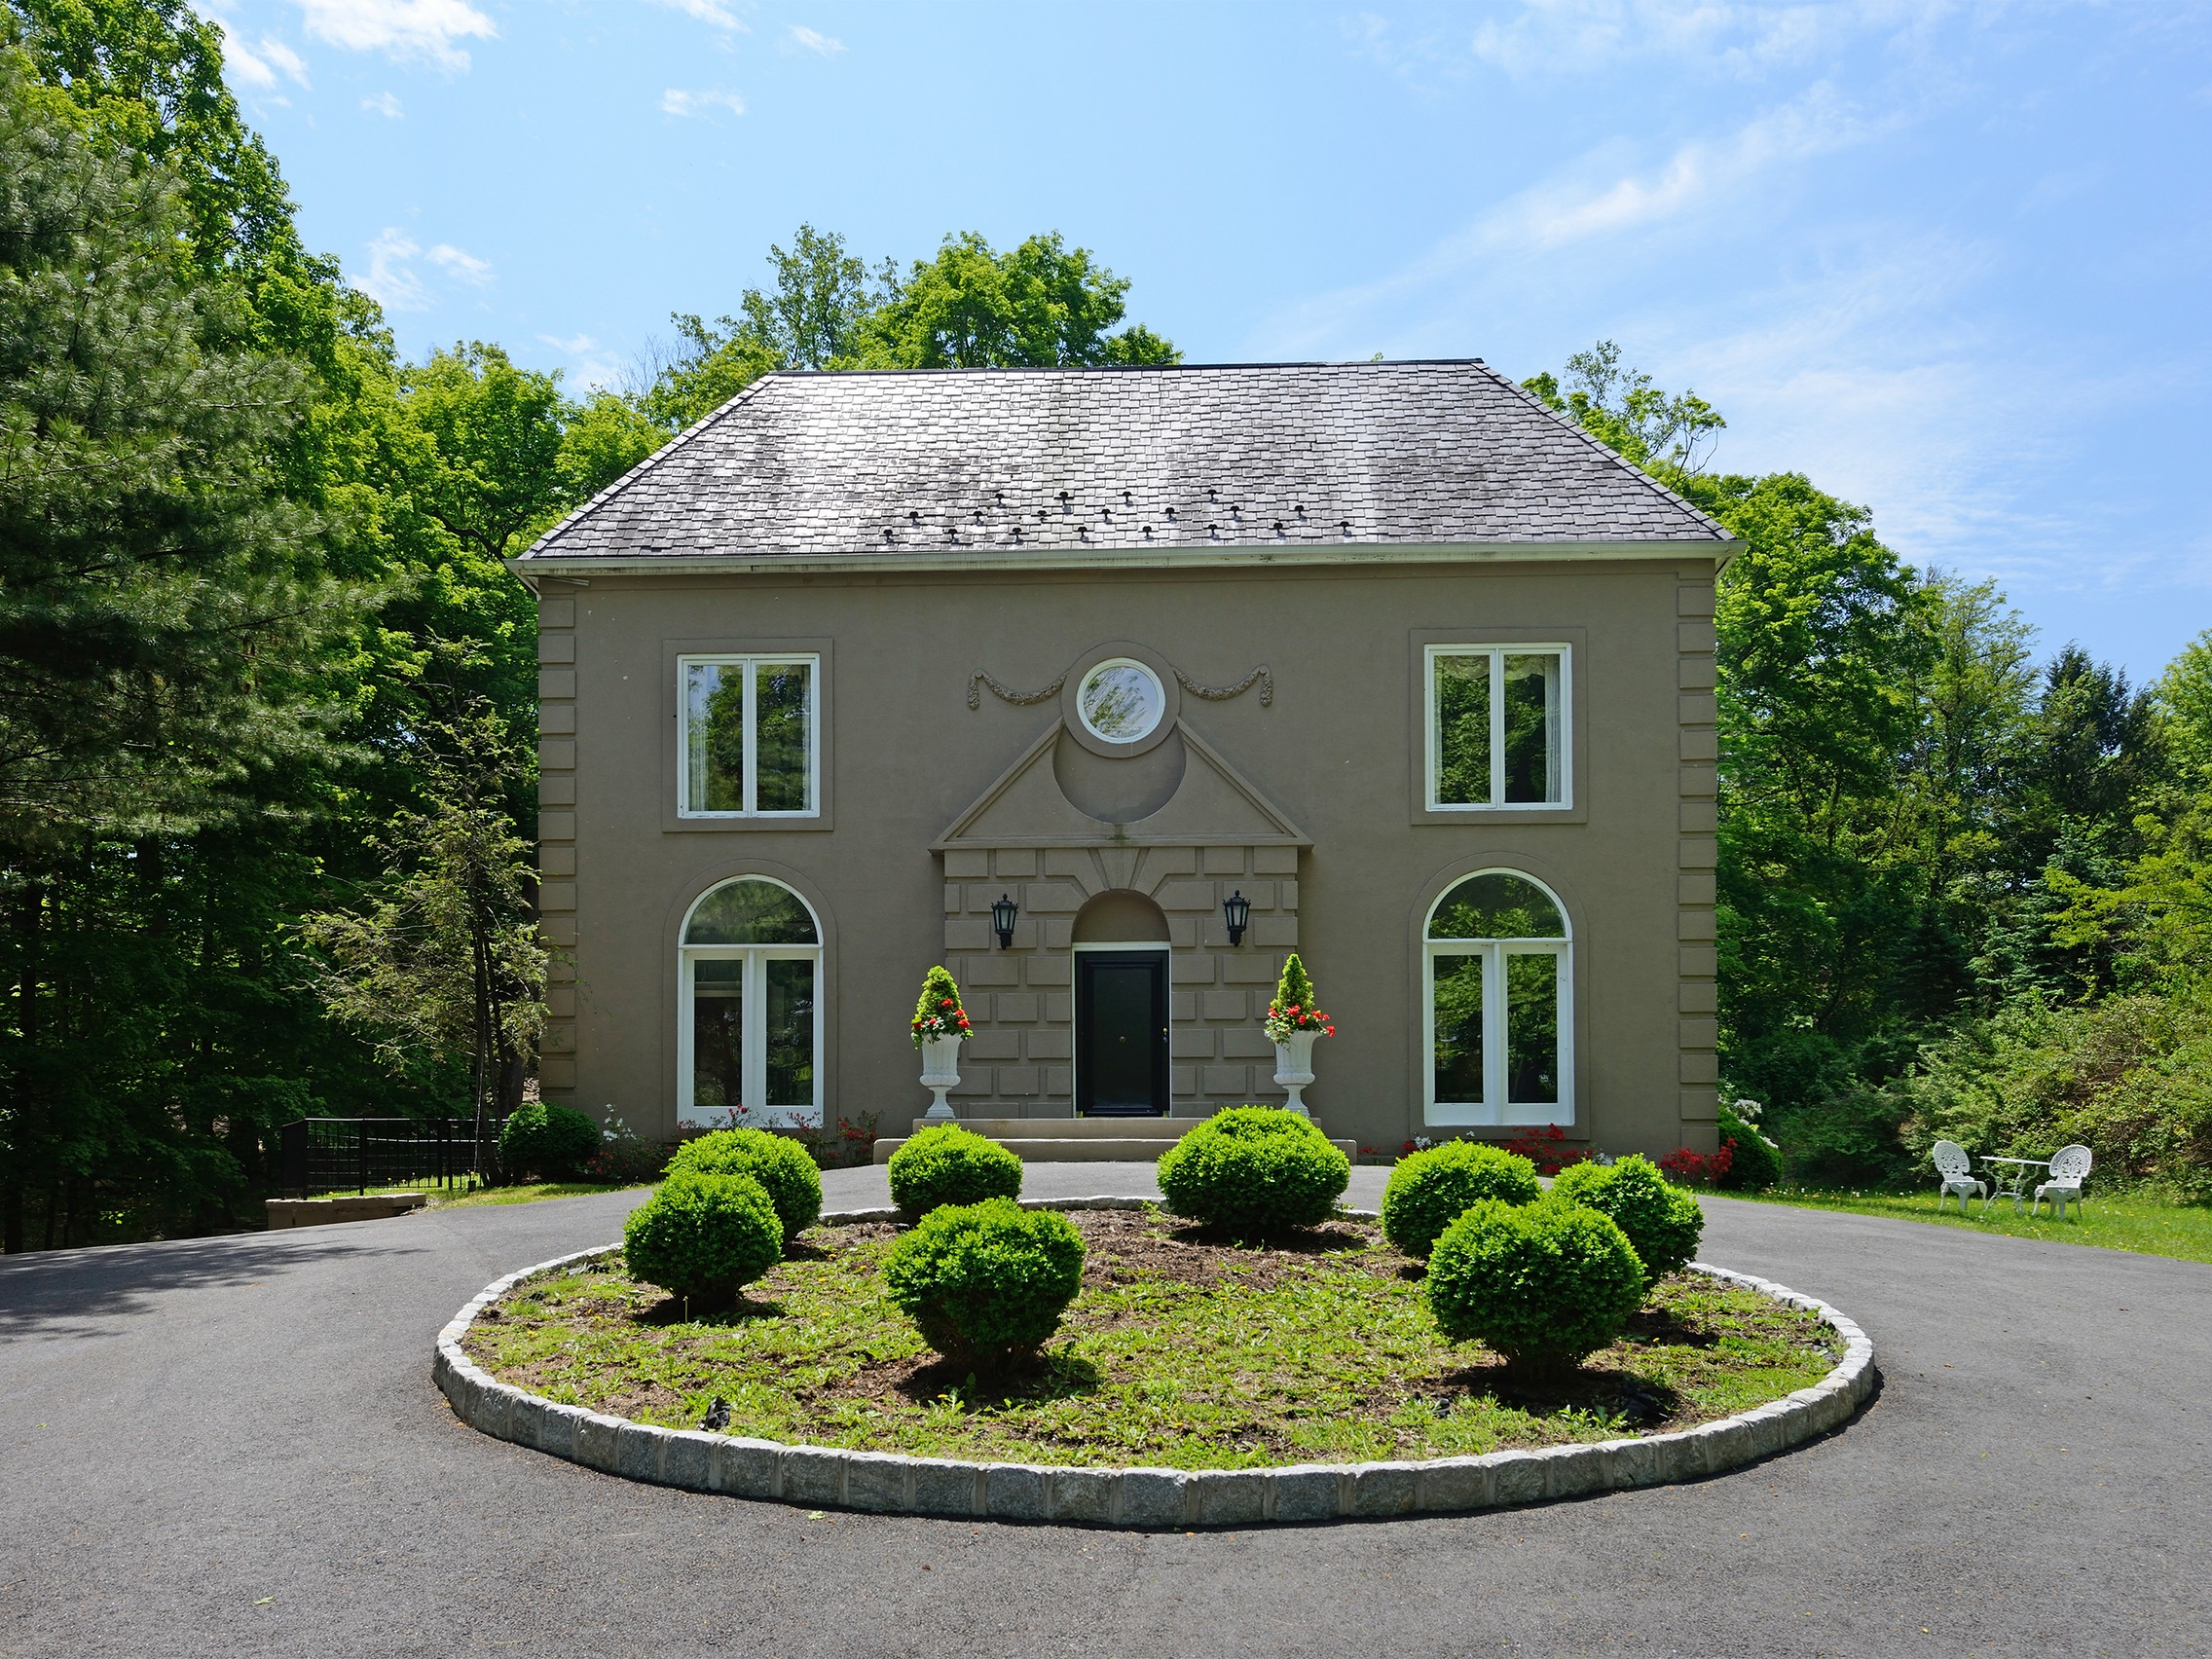 Single Family Home for Sale at Into the Woods 27 Pepperidge Road Tuxedo Park, New York, 10987 United States